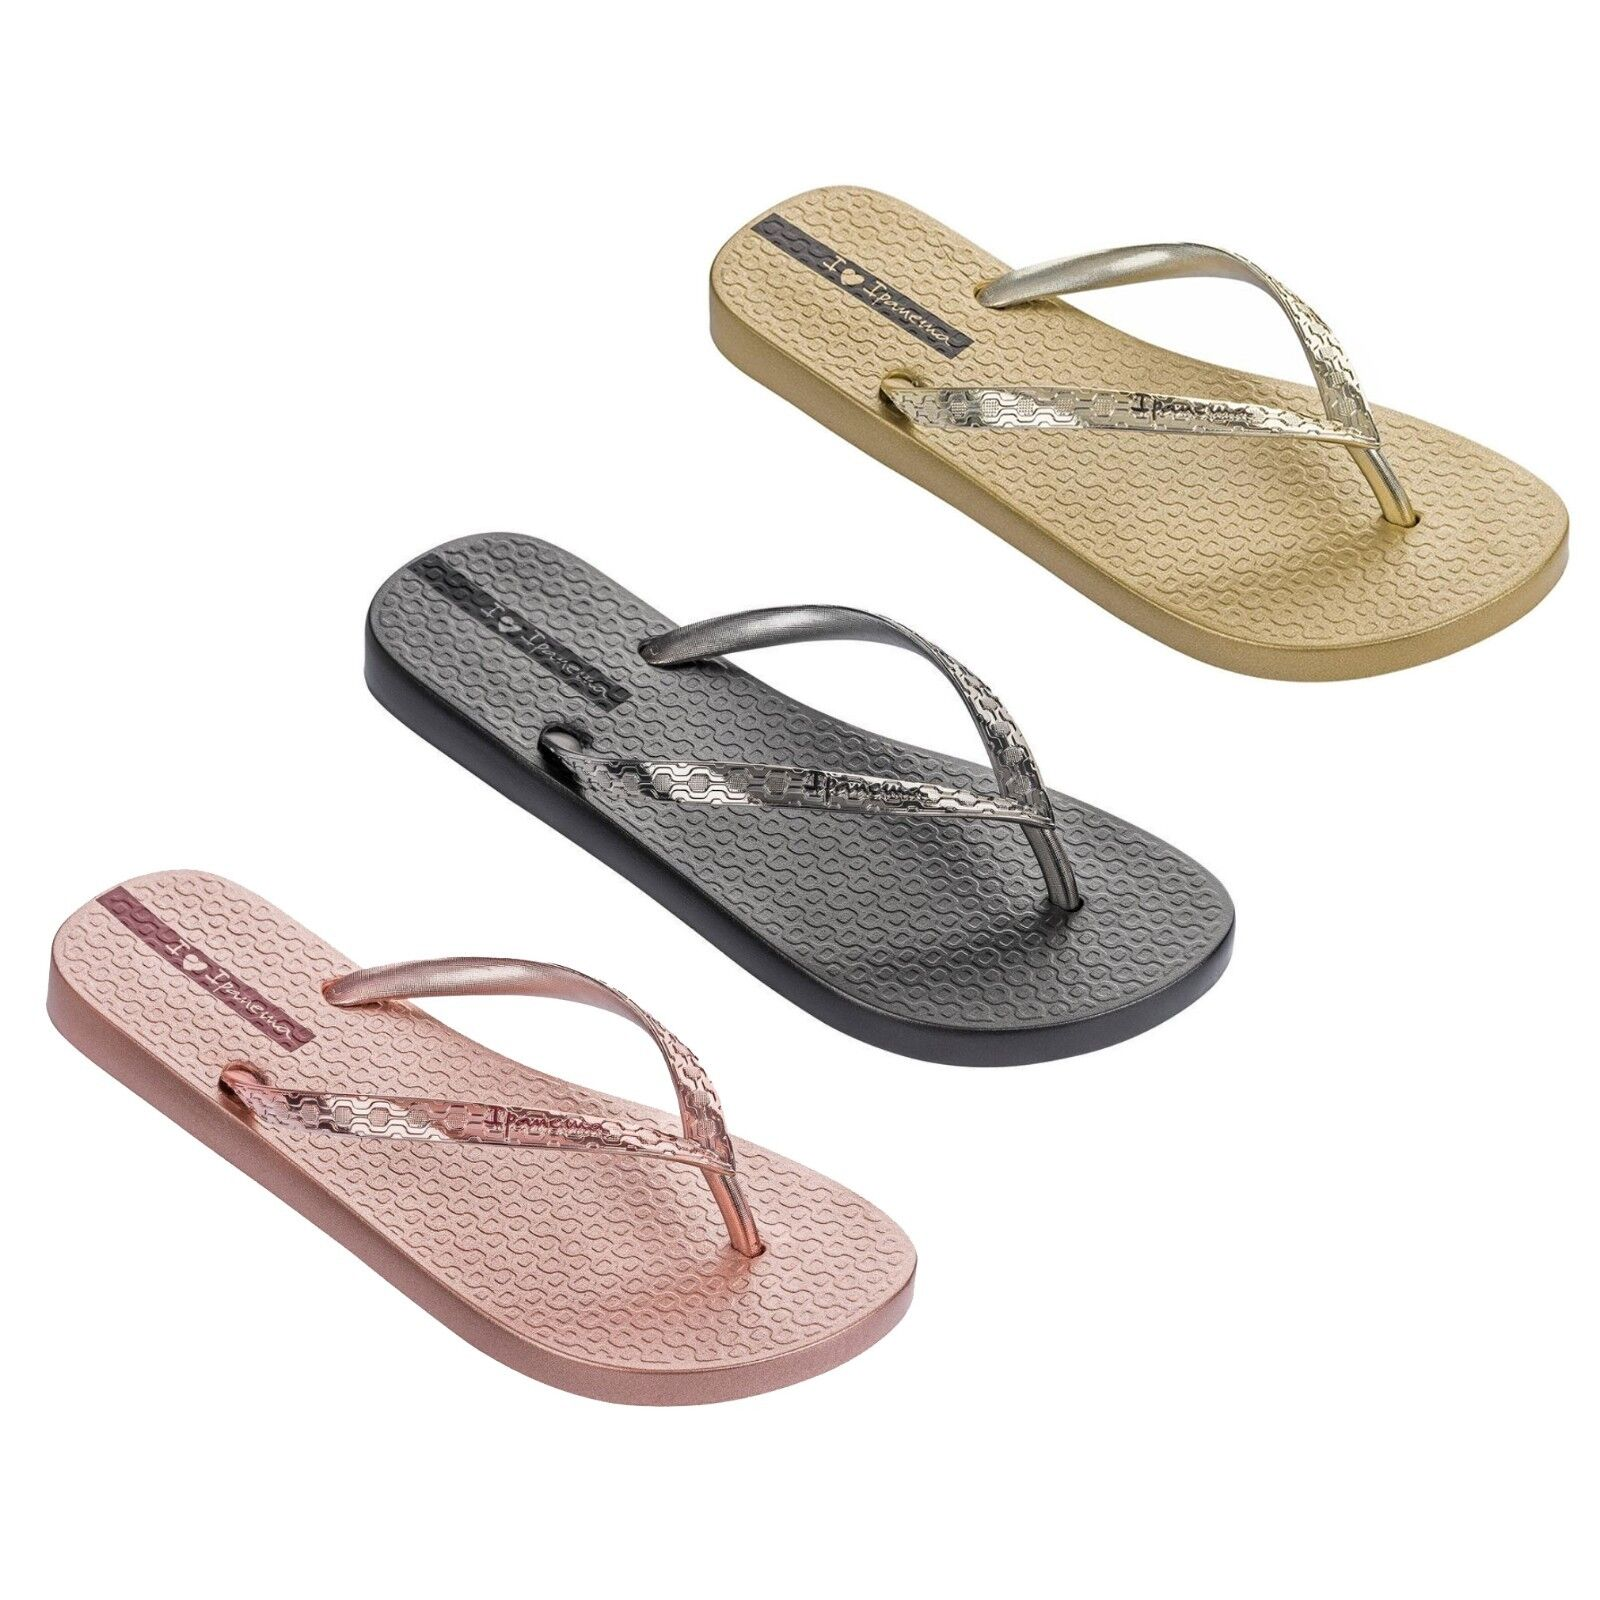 IPANEMA womens flip flops Glam Fem 82398 Limited Edition MADE IN BRAZIL